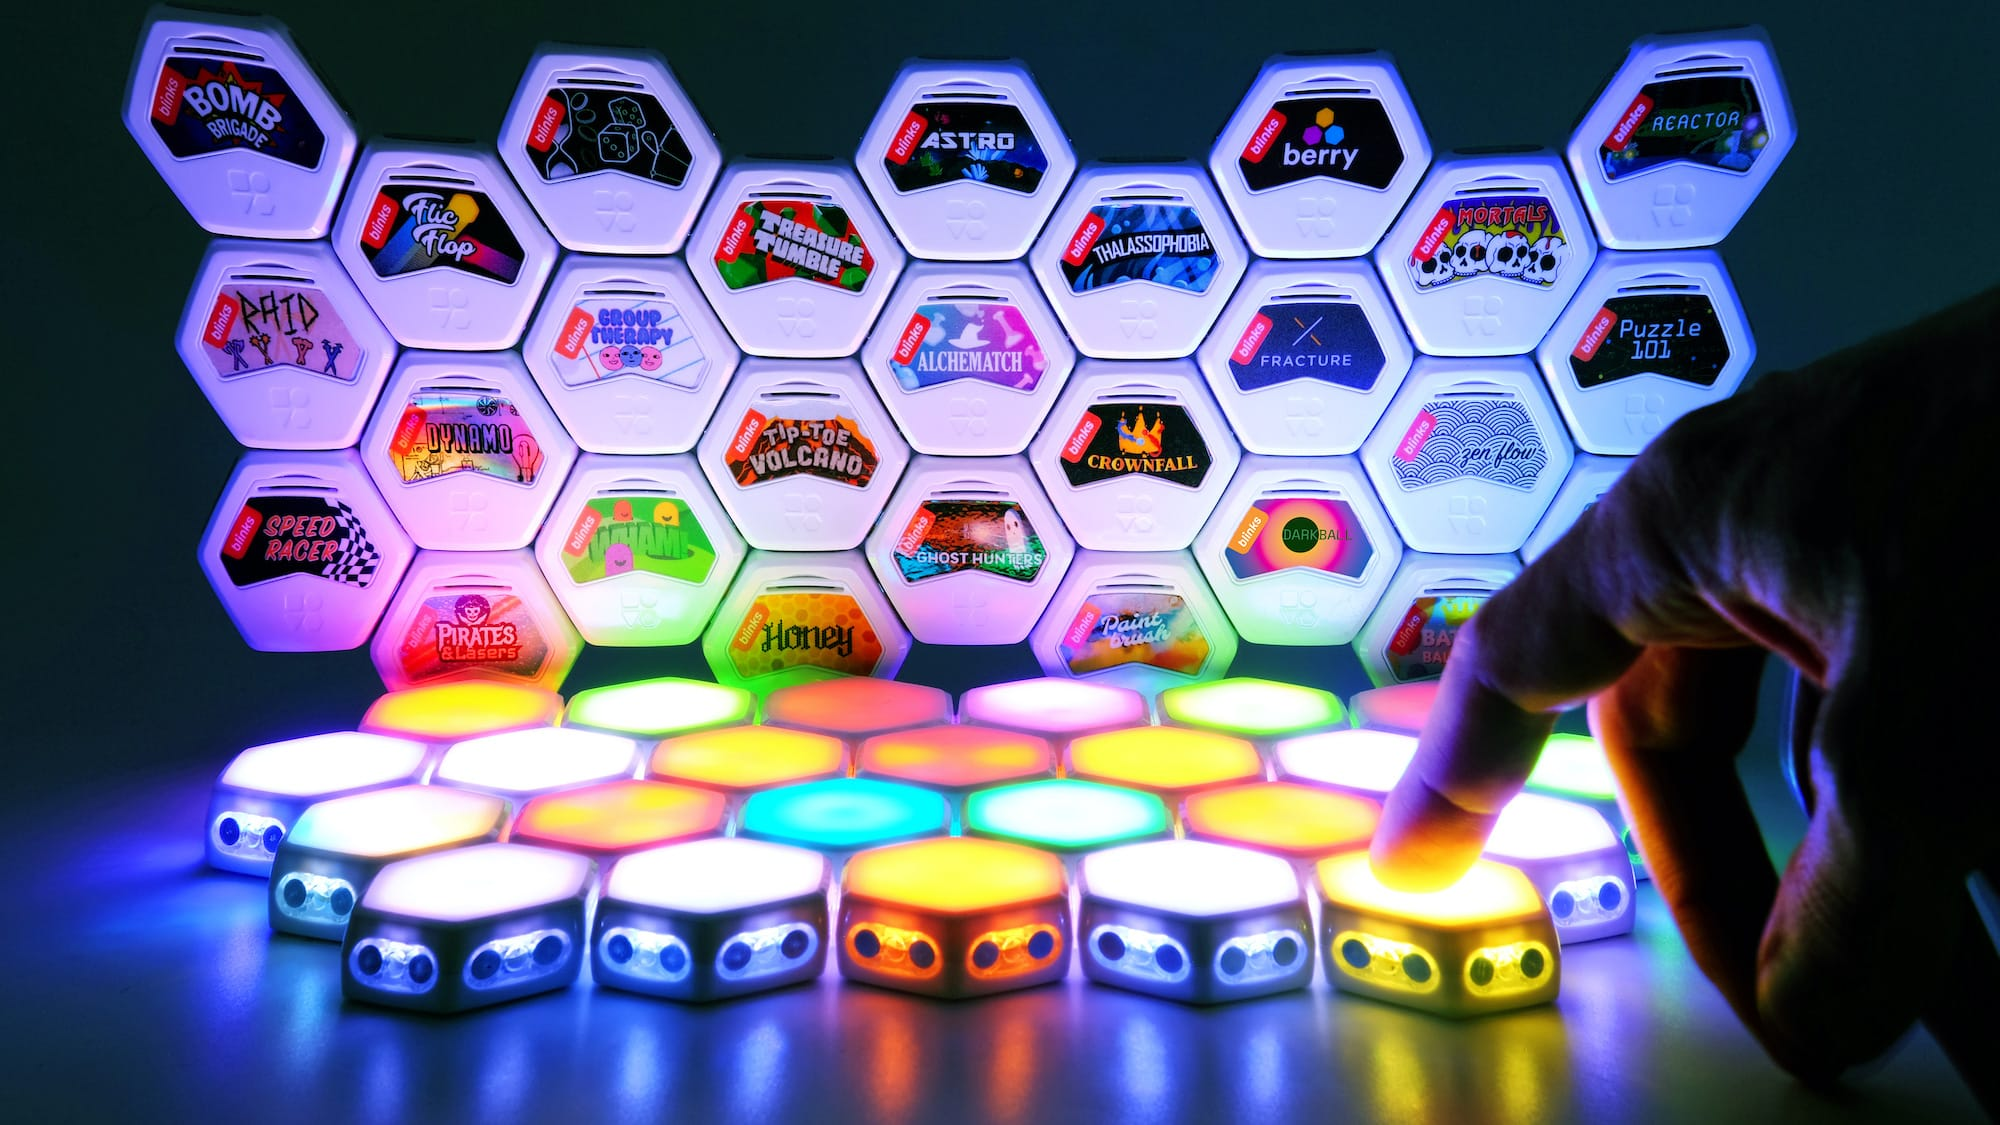 Blinks by Move38 smart tabletop game system has futuristic, touch-sensitive game pieces